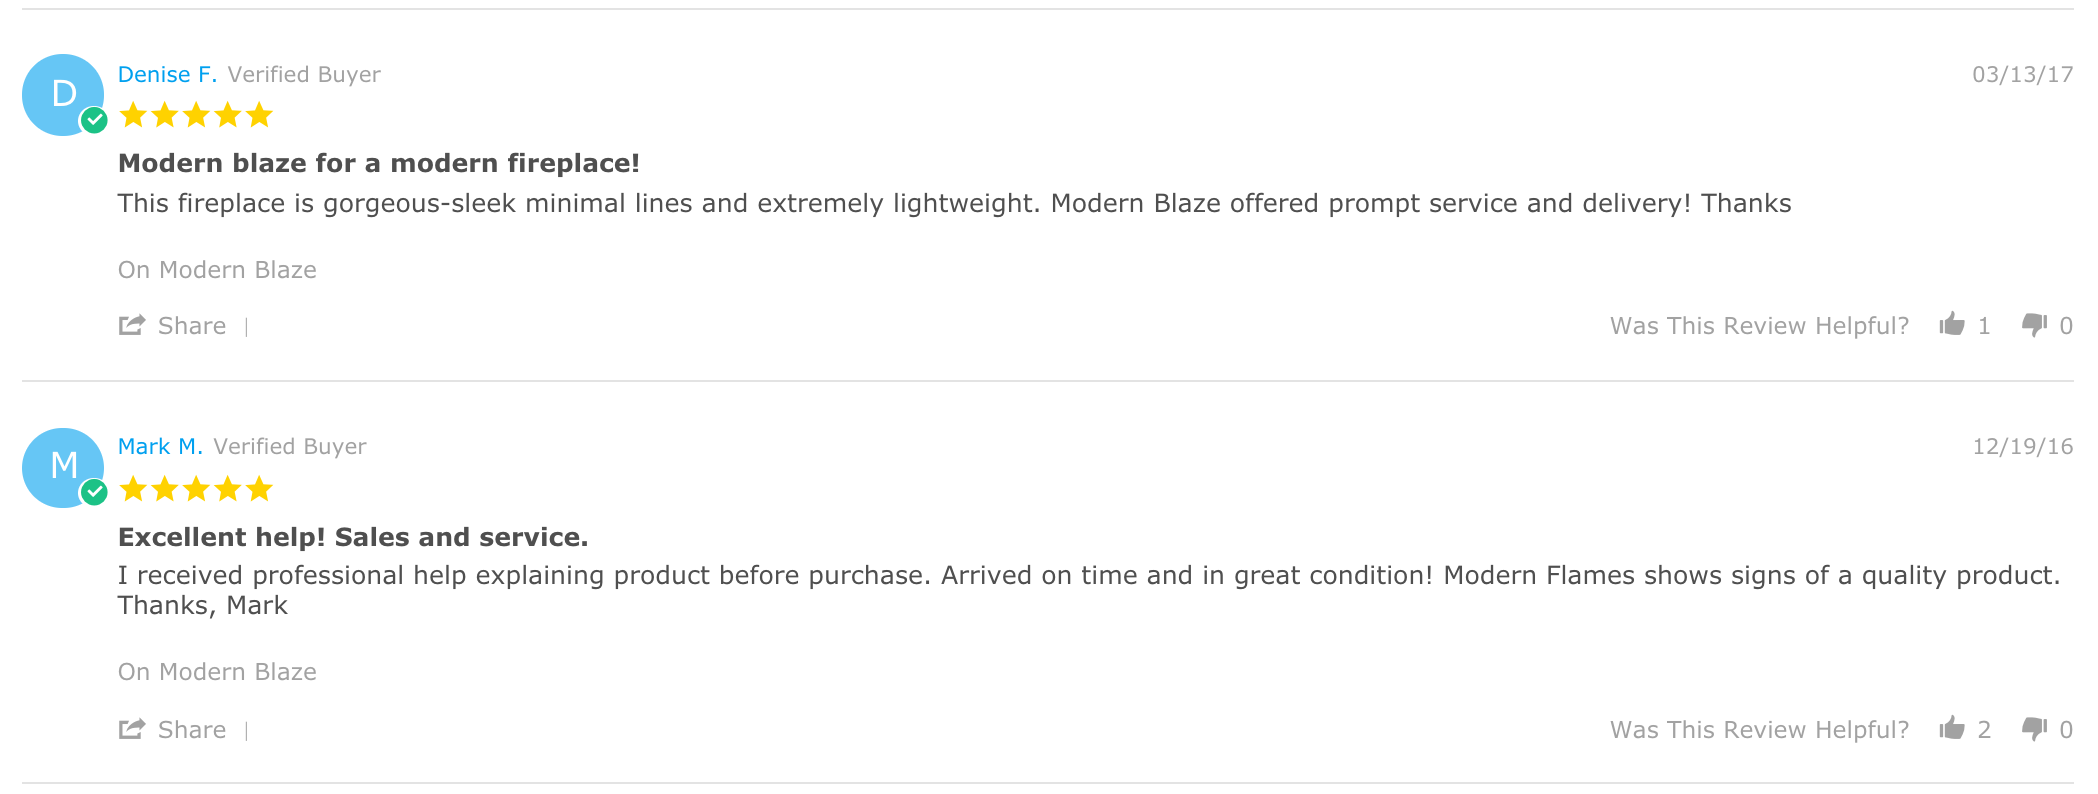 Modern Blaze Reviews